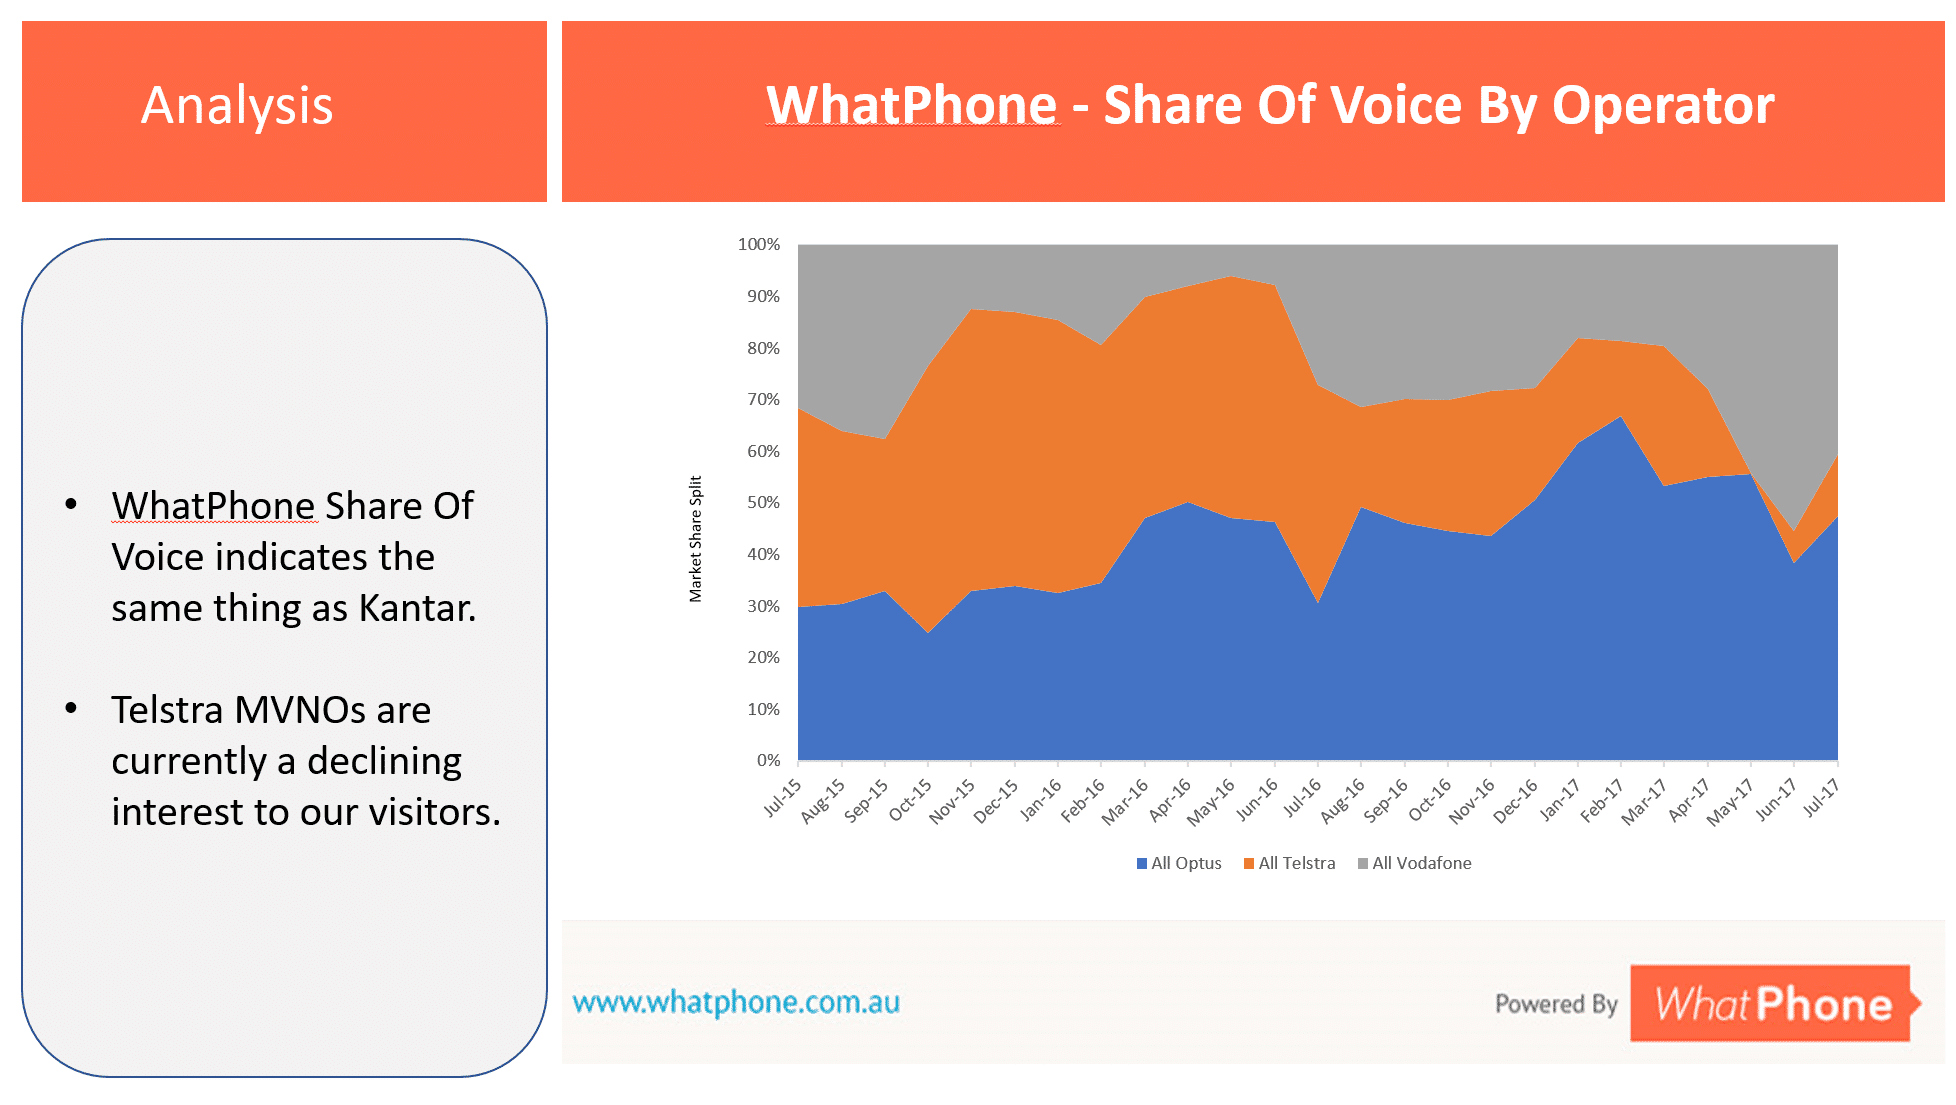 WhatPhone Share of Voice By Operator